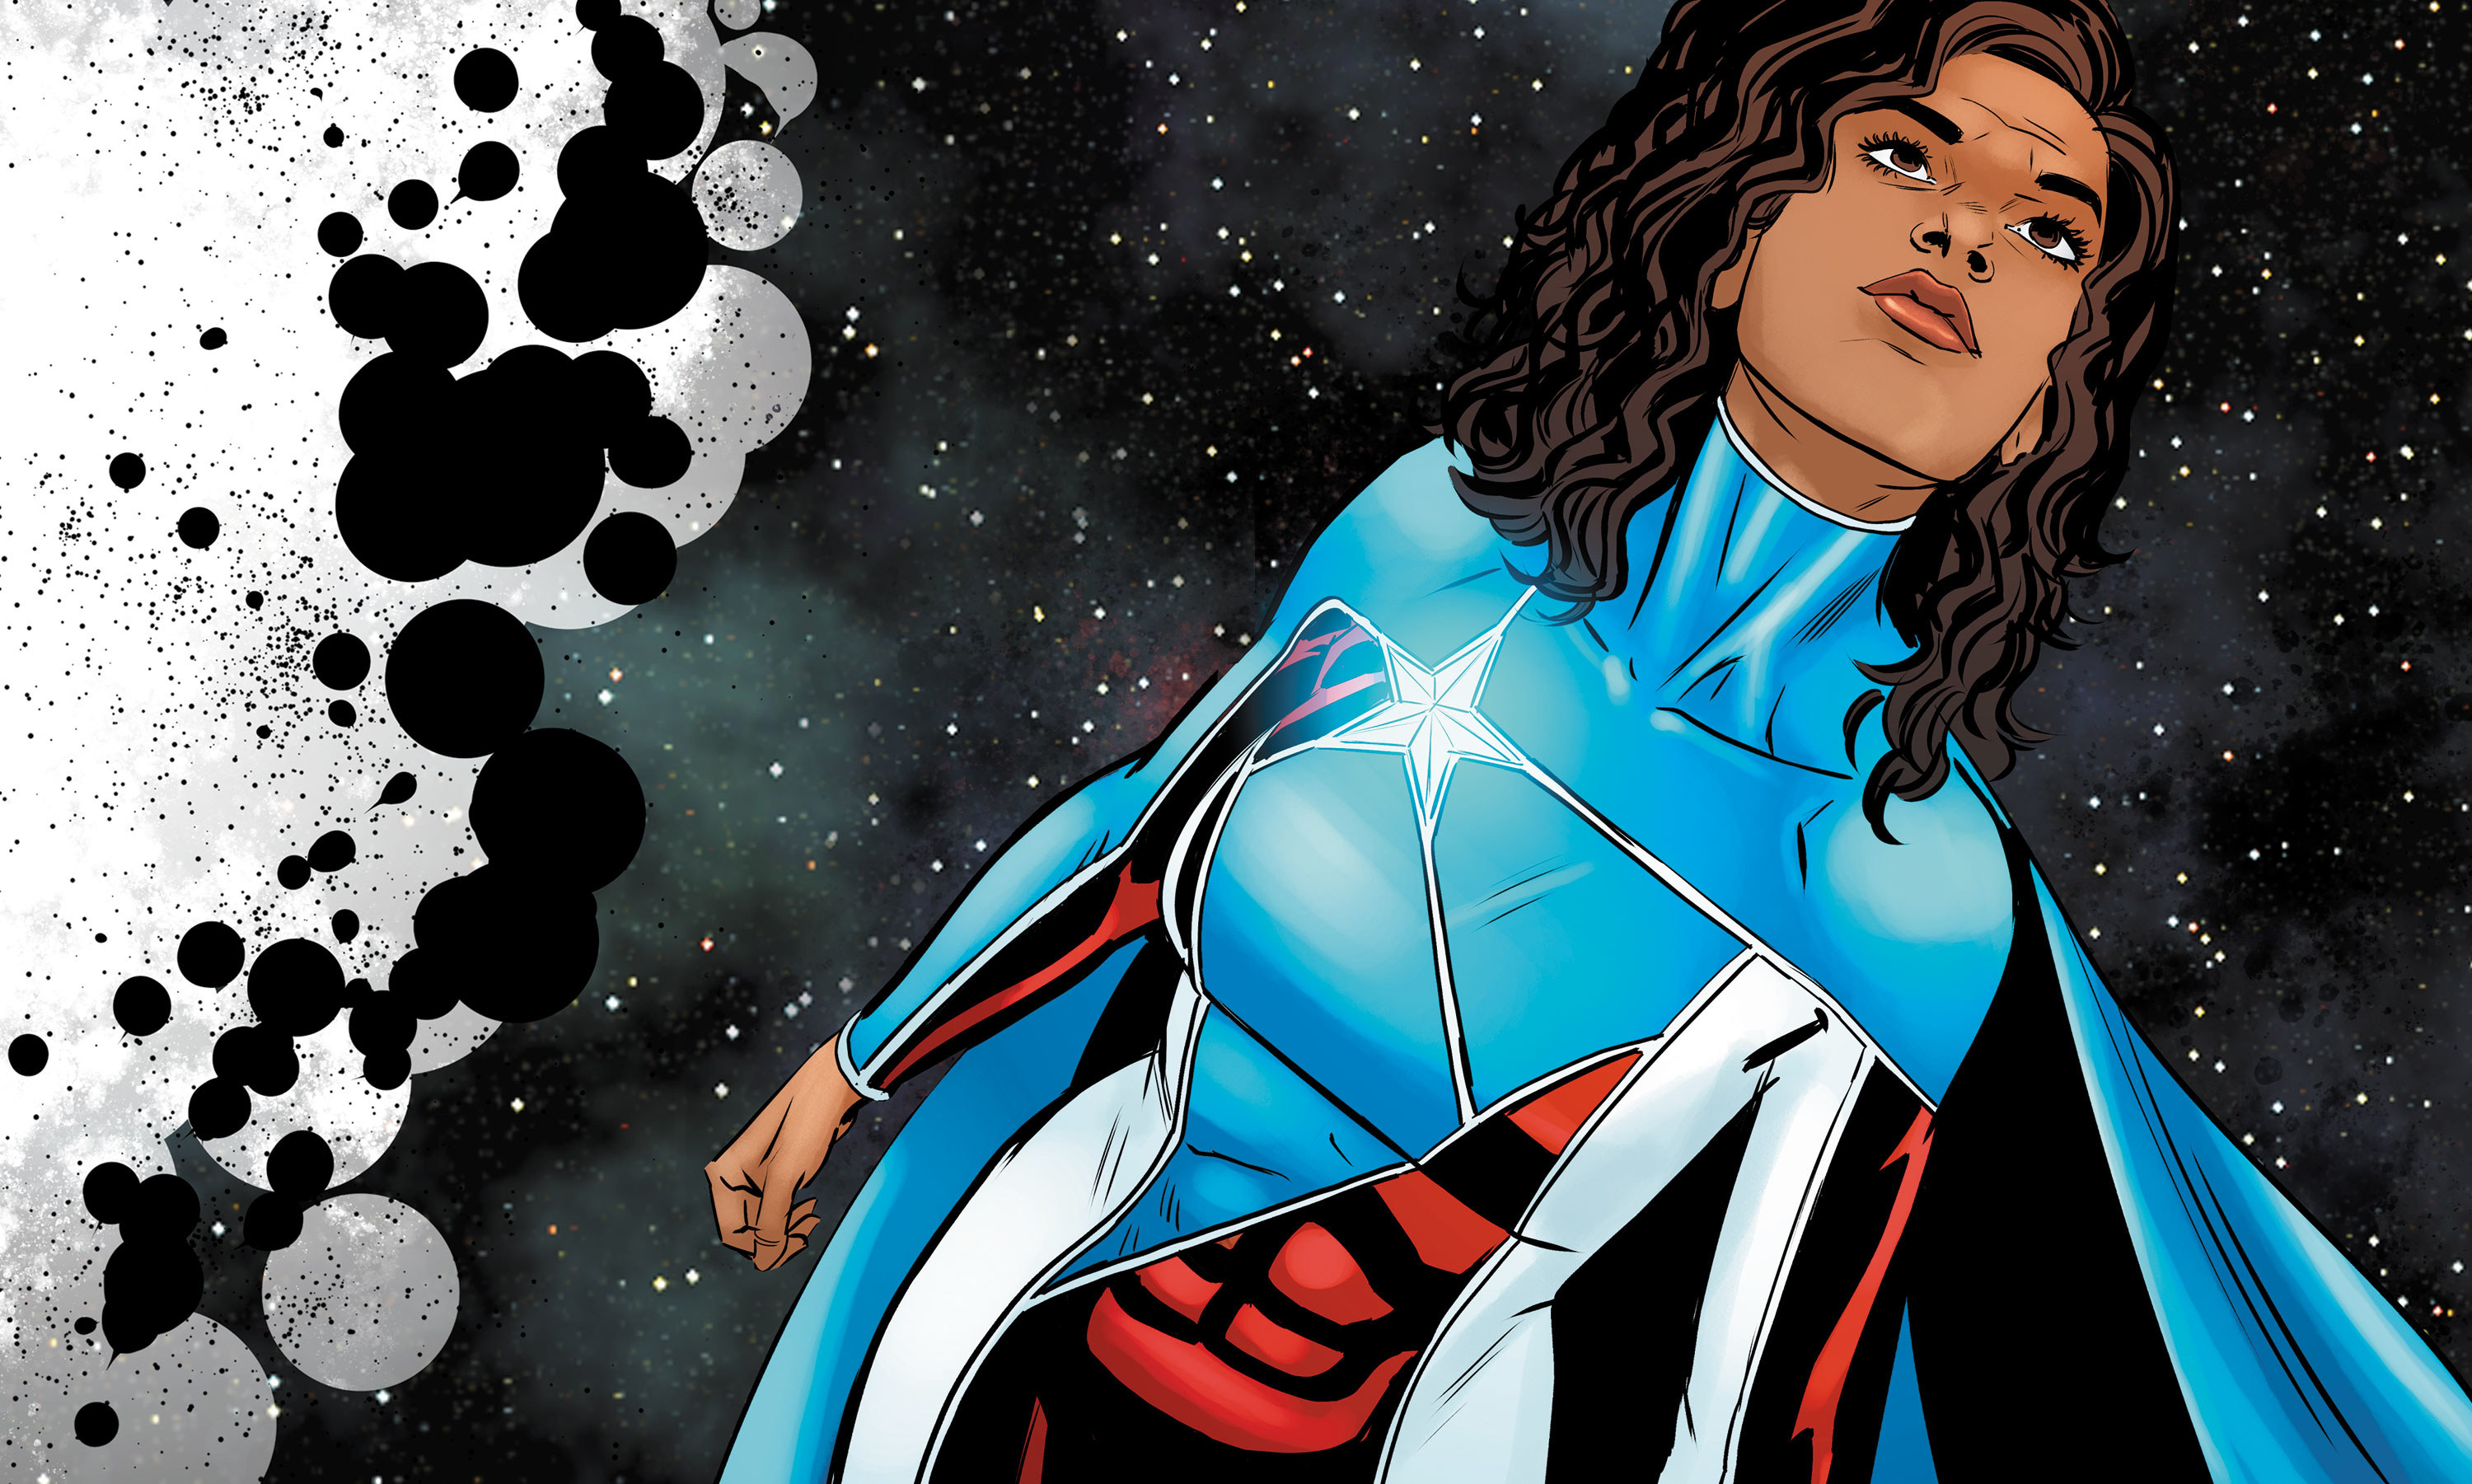 Comic illustration of character named Marisol Rios De La Luz flying in the galaxy.